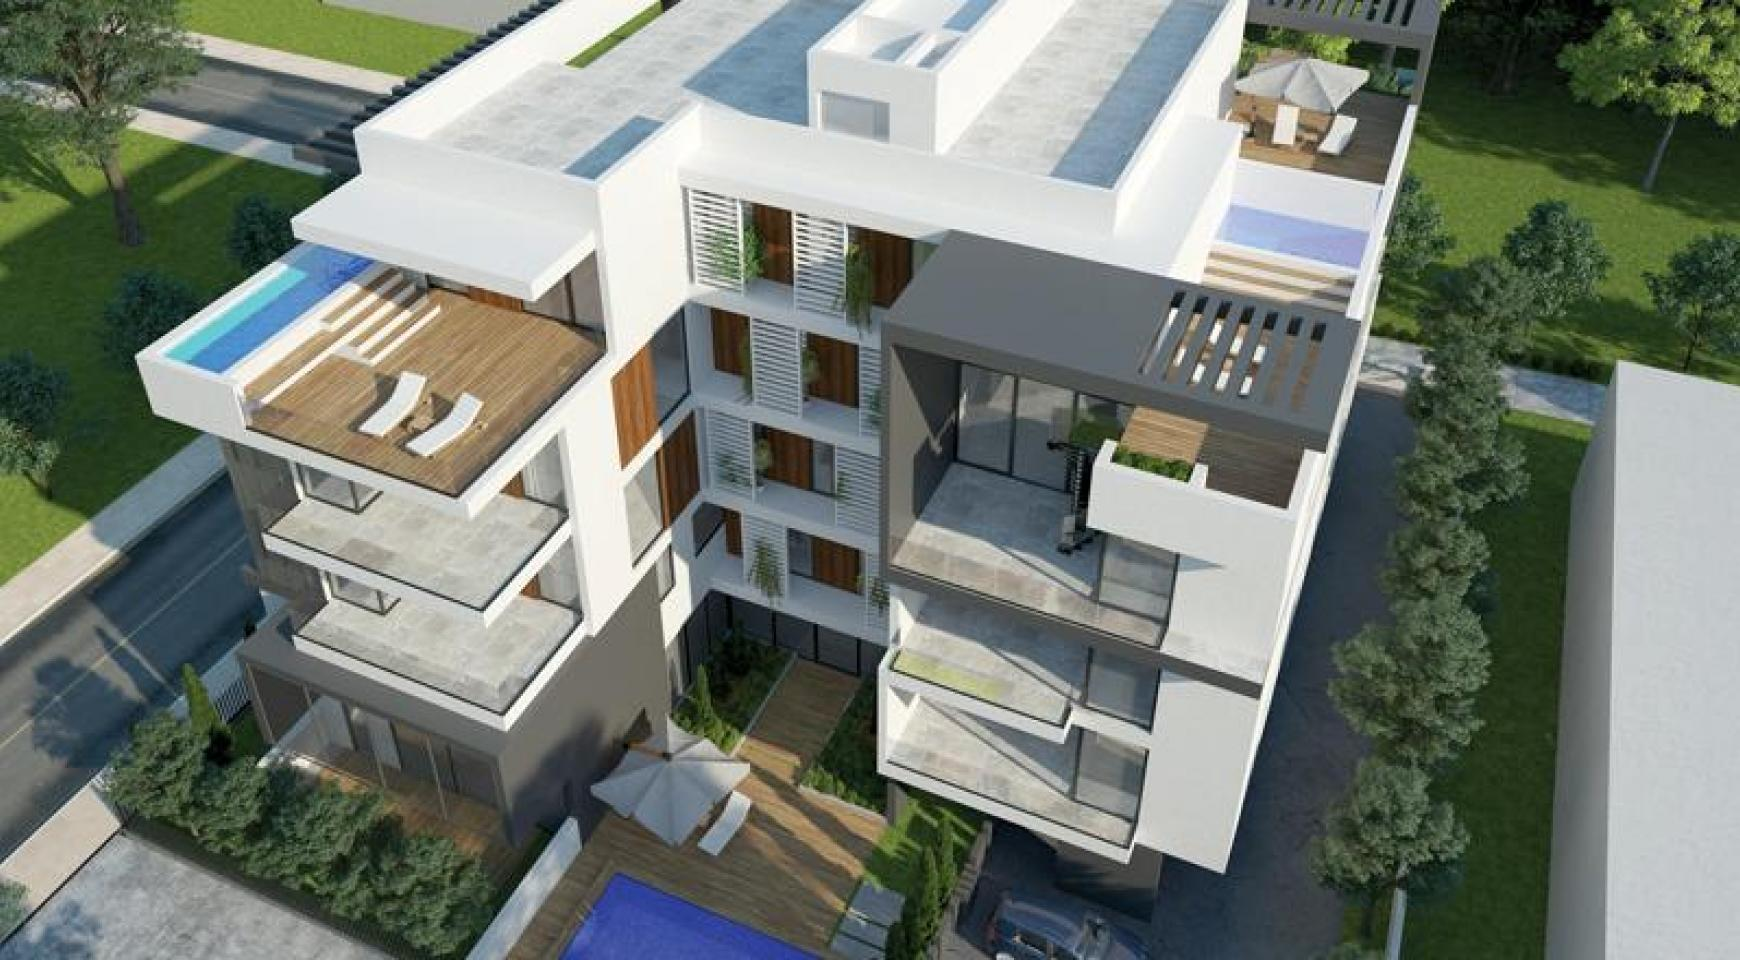 New 3 Bedroom Apartment in a Modern Development near the Sea - 2